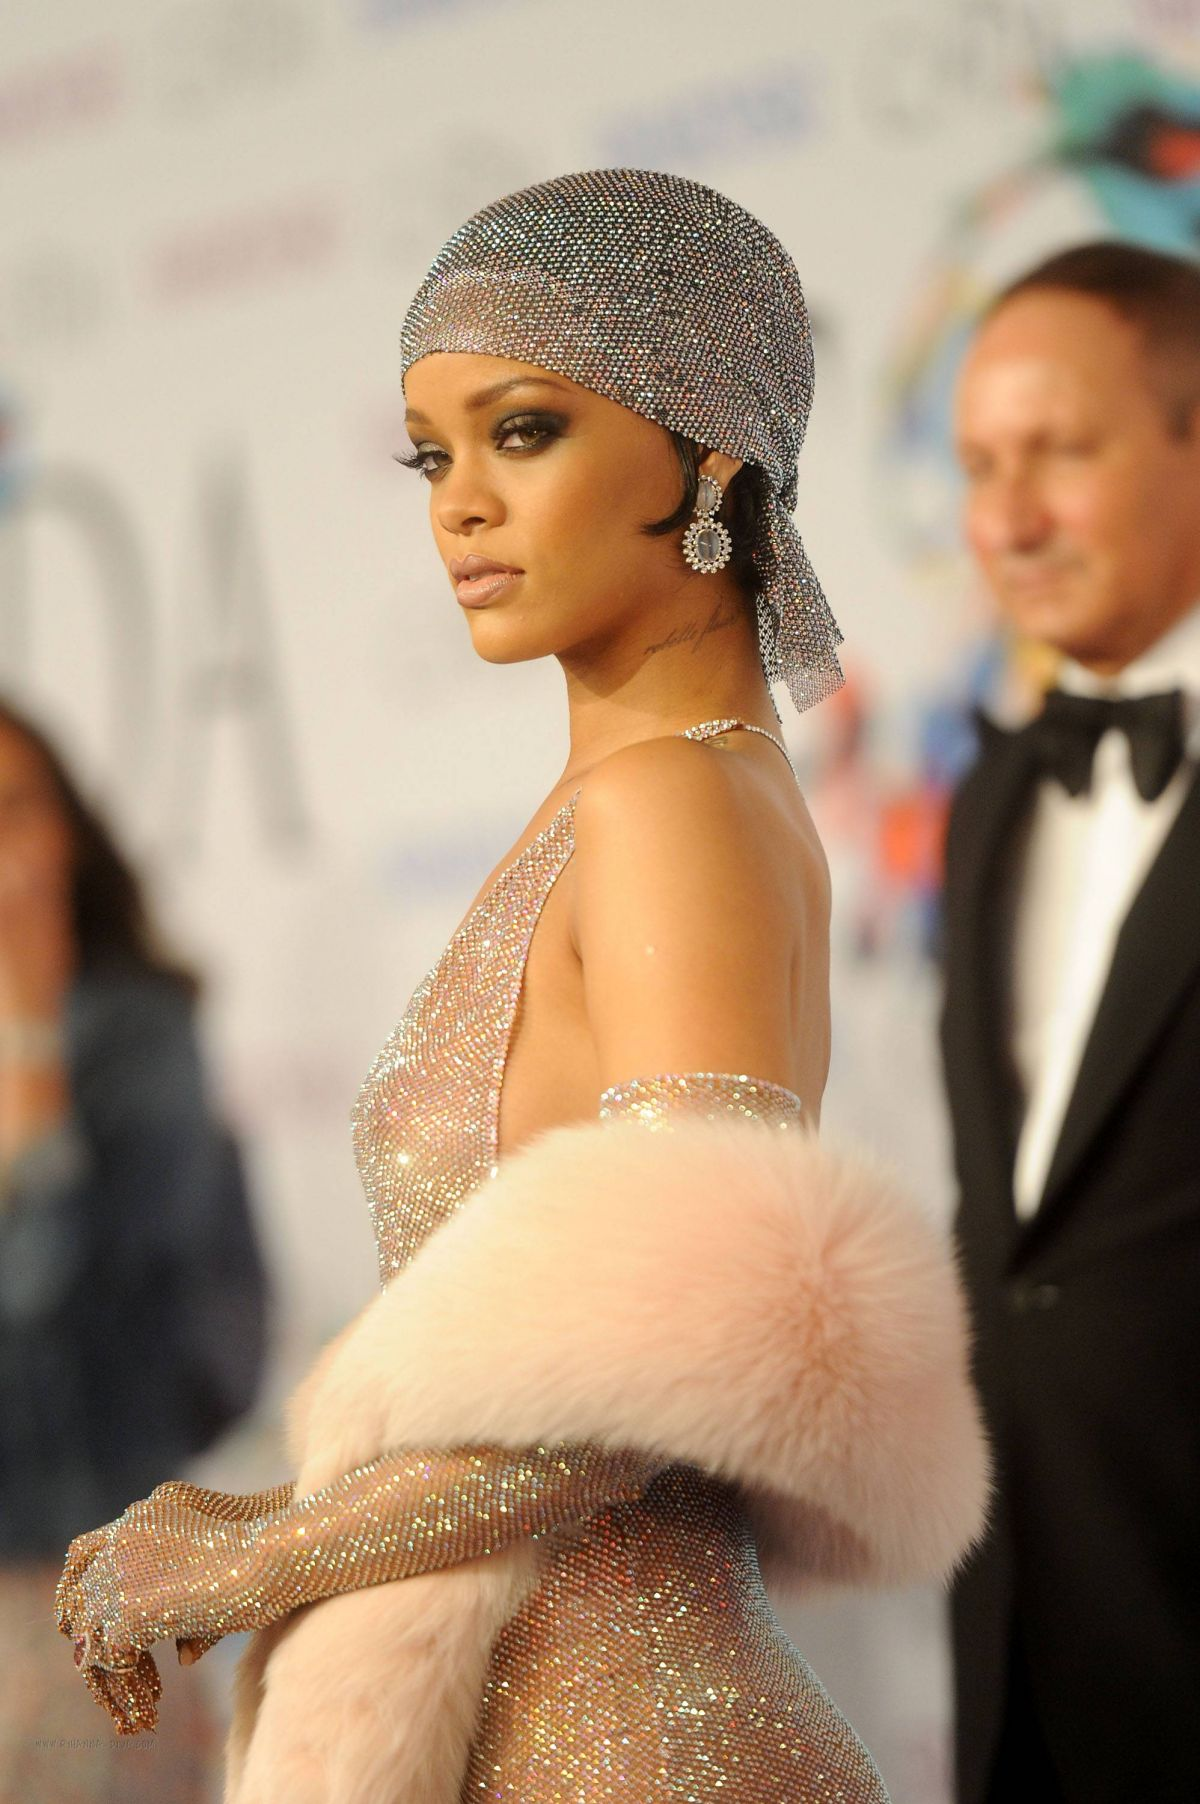 Cfda awards rihanna 2014 pity, that